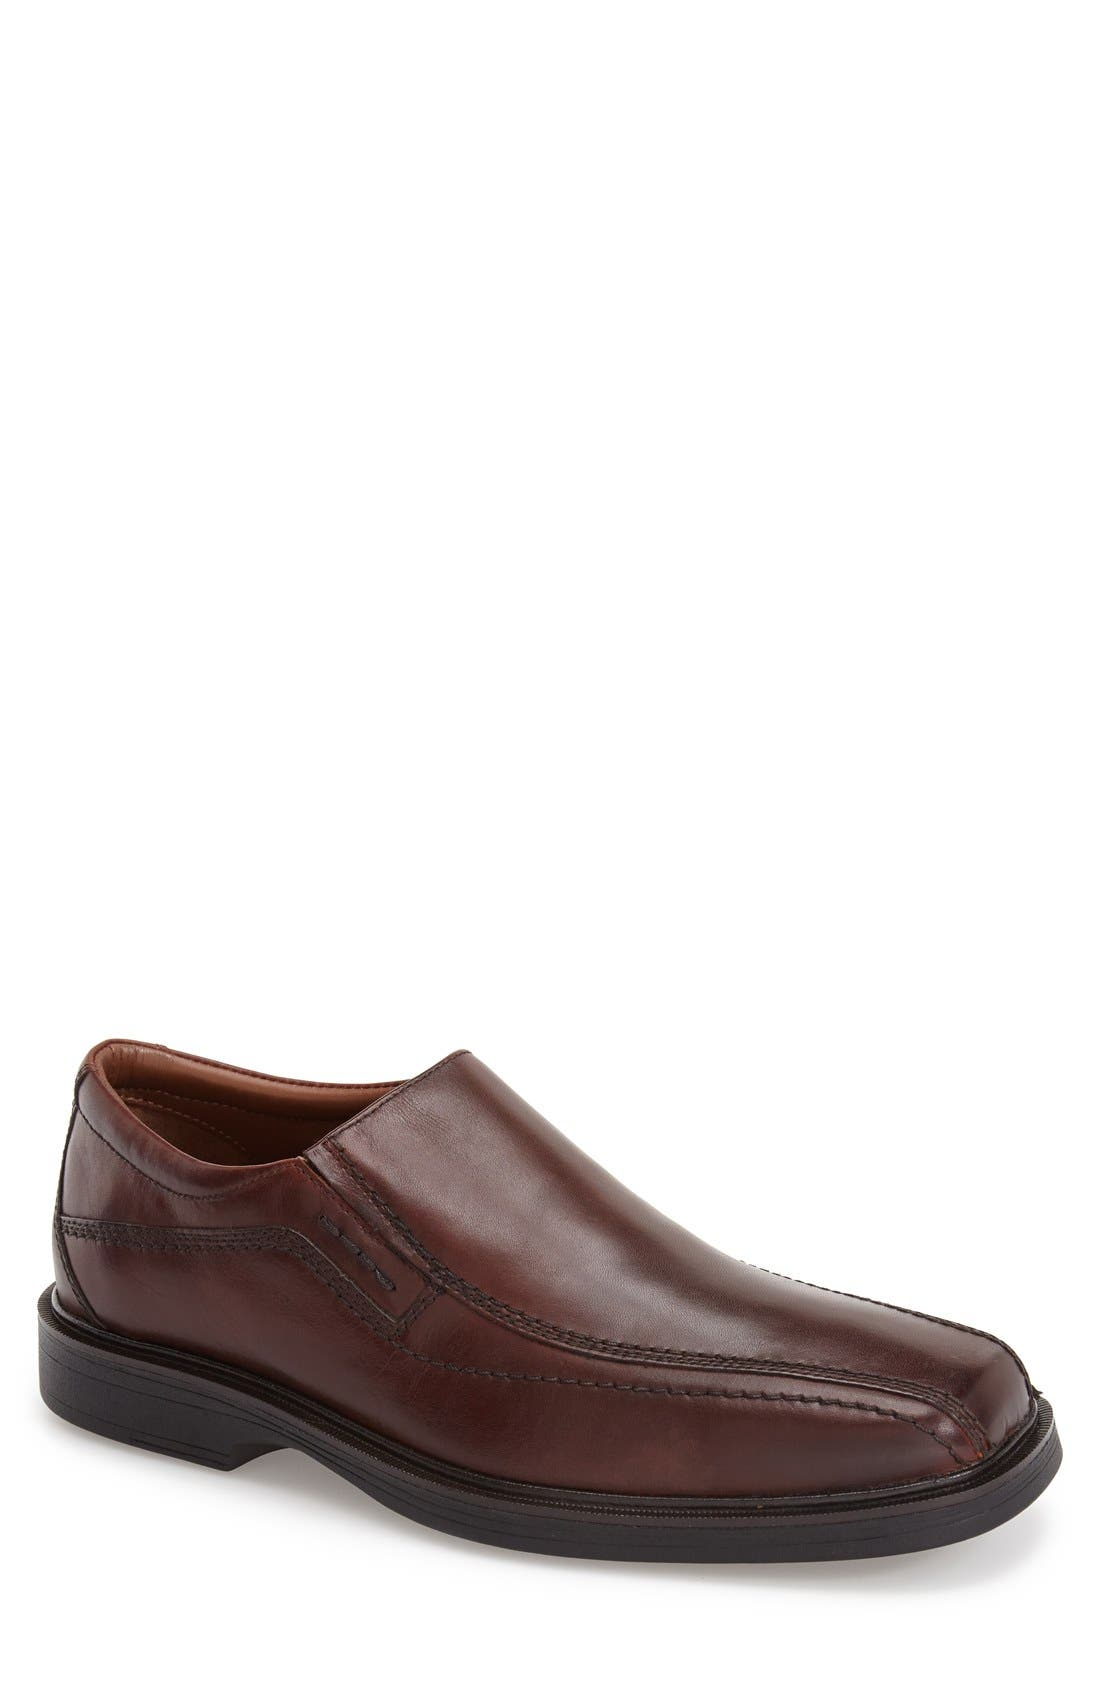 Main Image - Johnston & Murphy 'Penn' Venetian Loafer (Men)